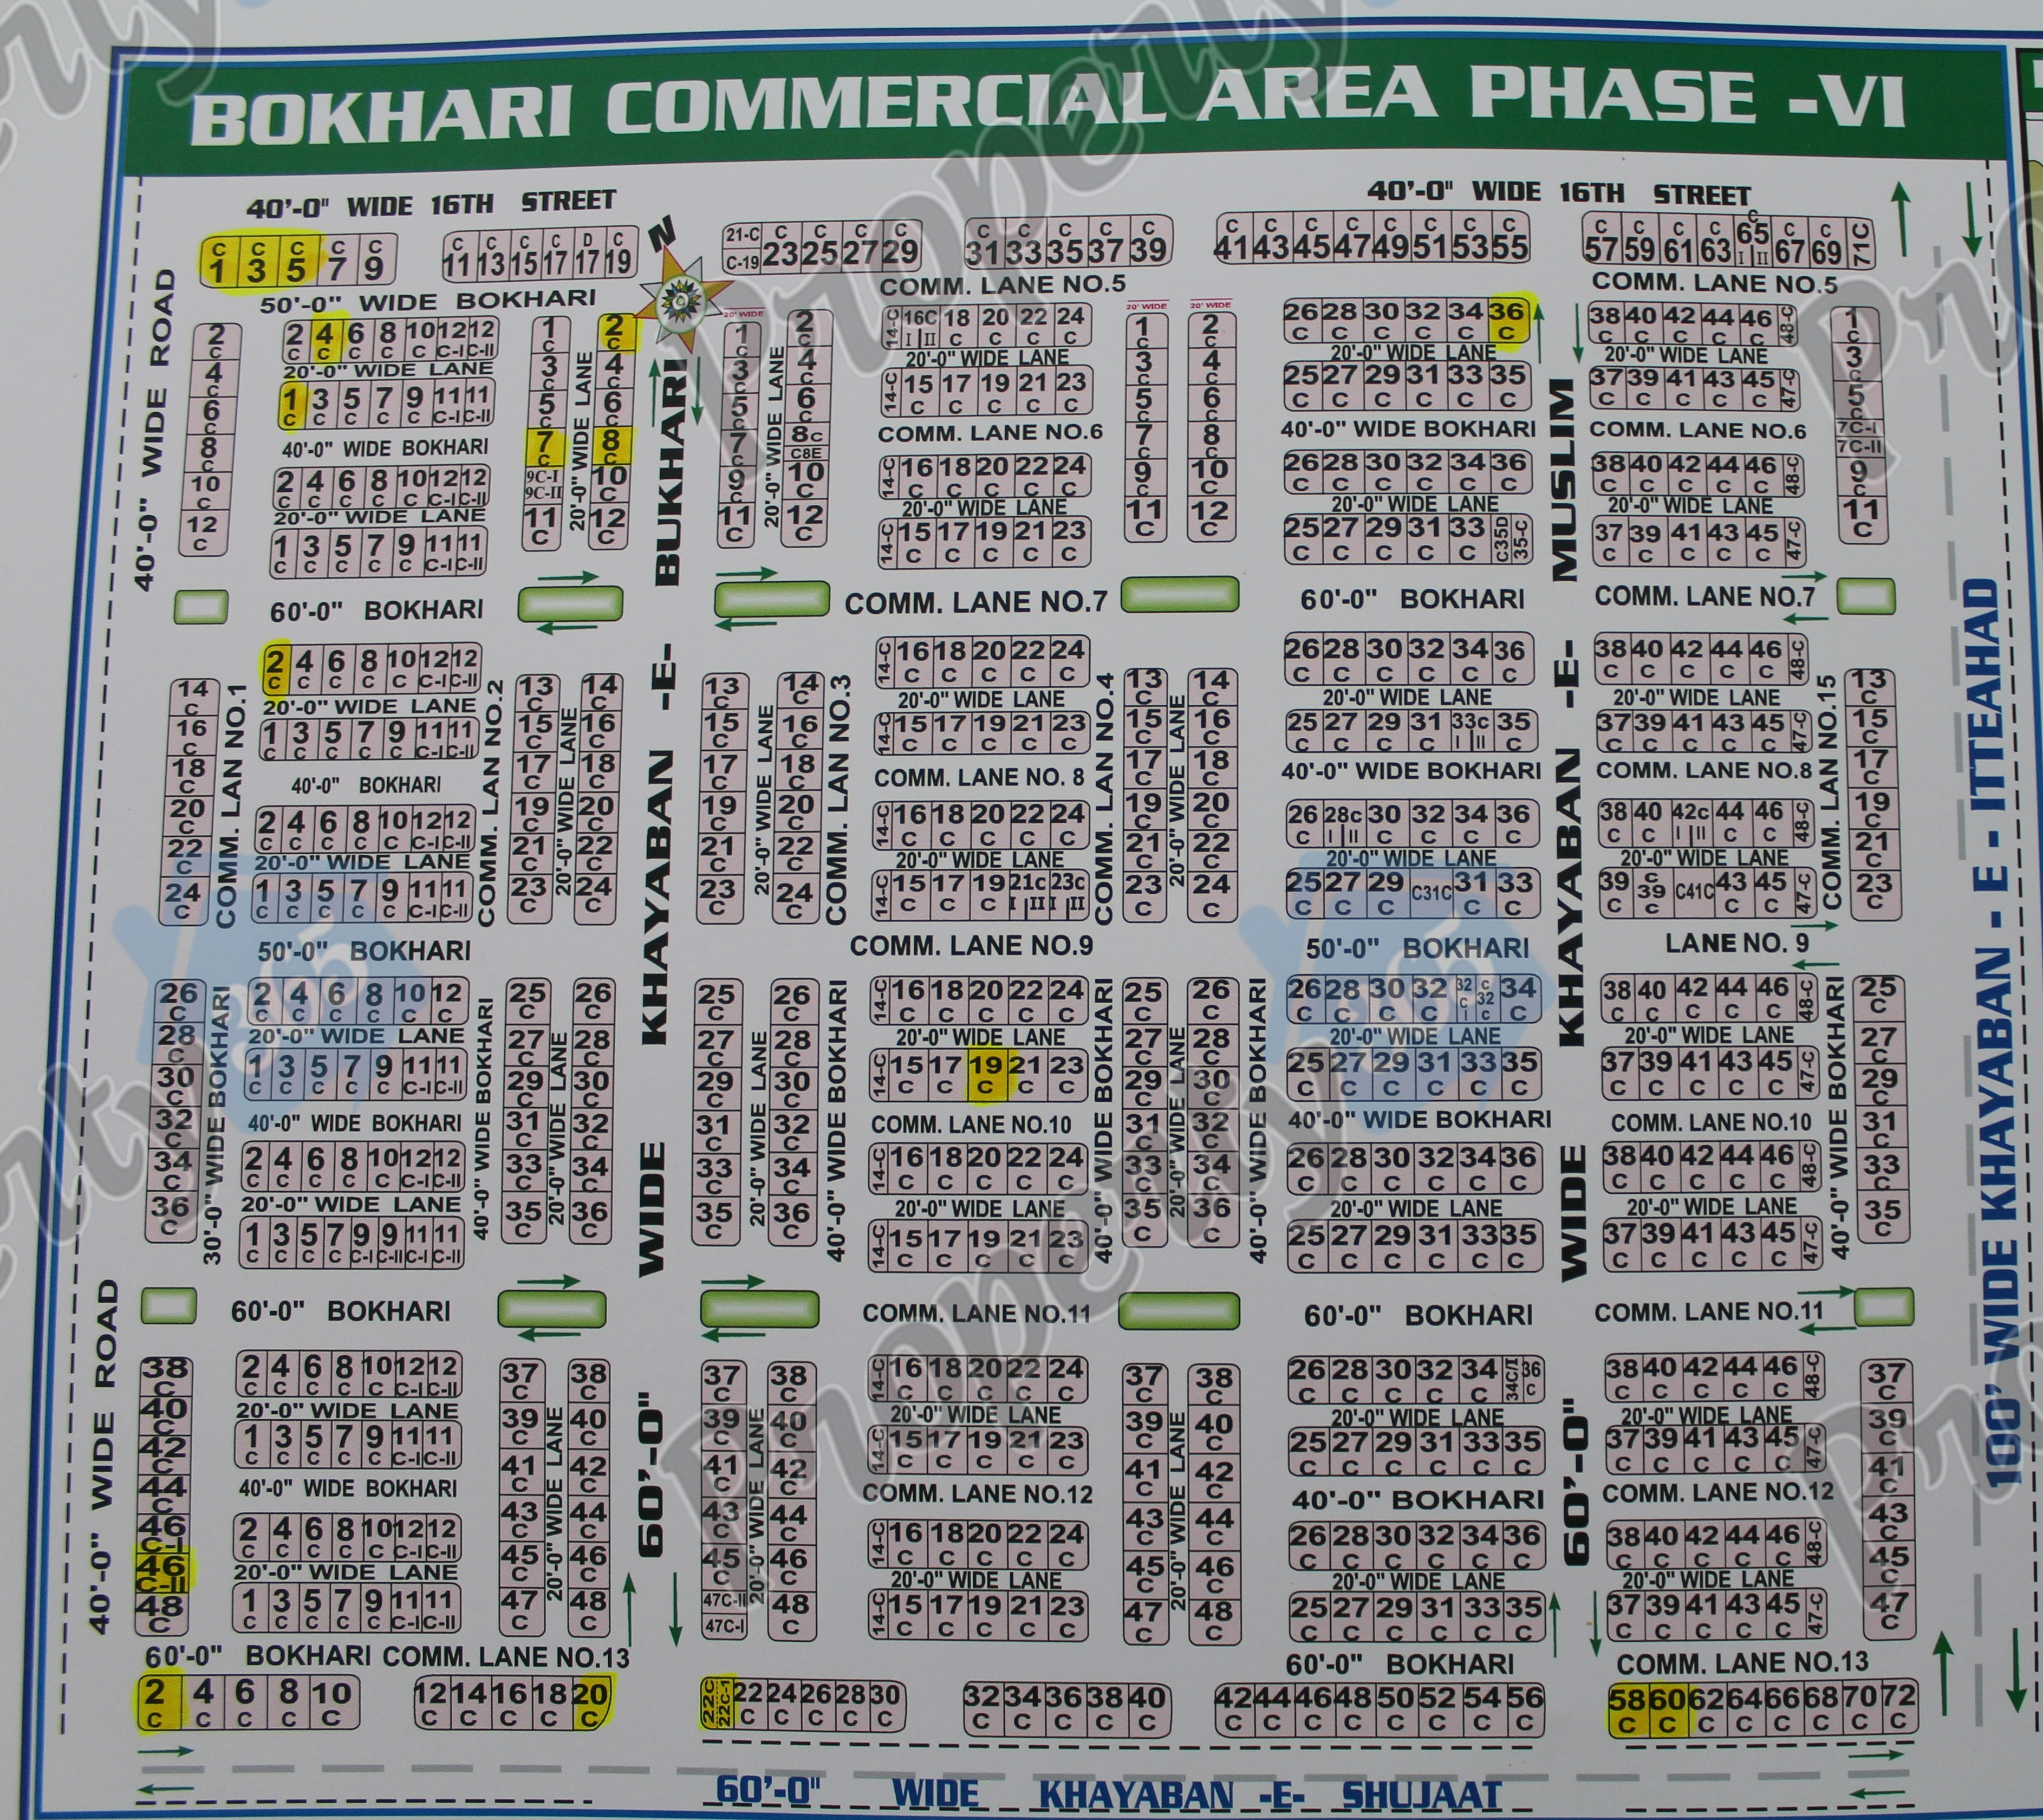 http://property365.pk/wp-content/uploads/2014/06/Bokhari-Commercial-Area-Phase-6-VI-Map.jpg